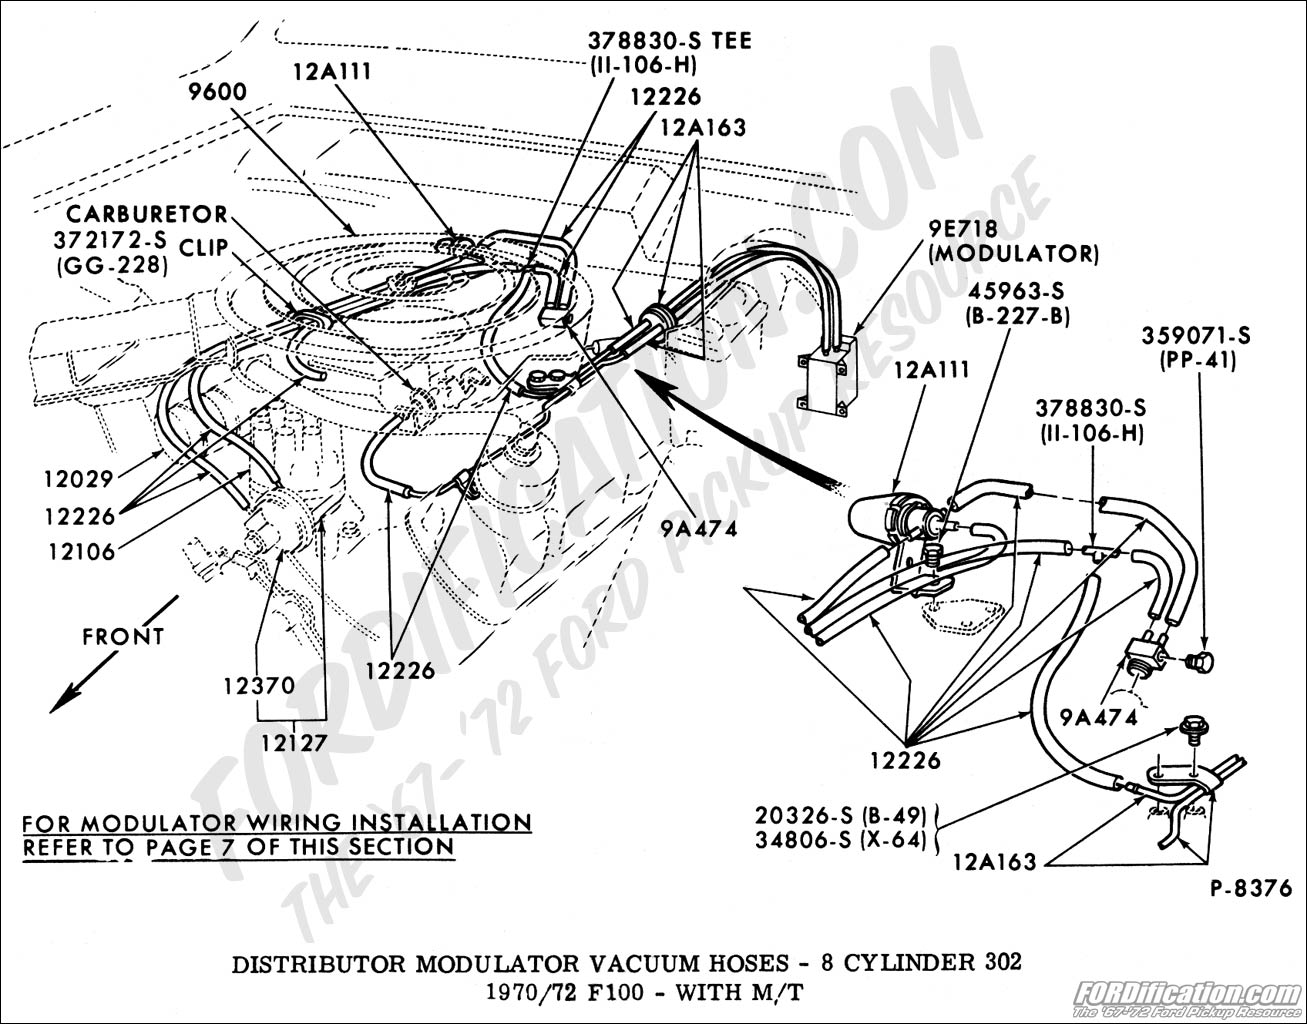 2010 Ford F 450 Fuse Box Diagram Manual Of Wiring E Images Gallery Truck Technical Drawings And Schematics Section I